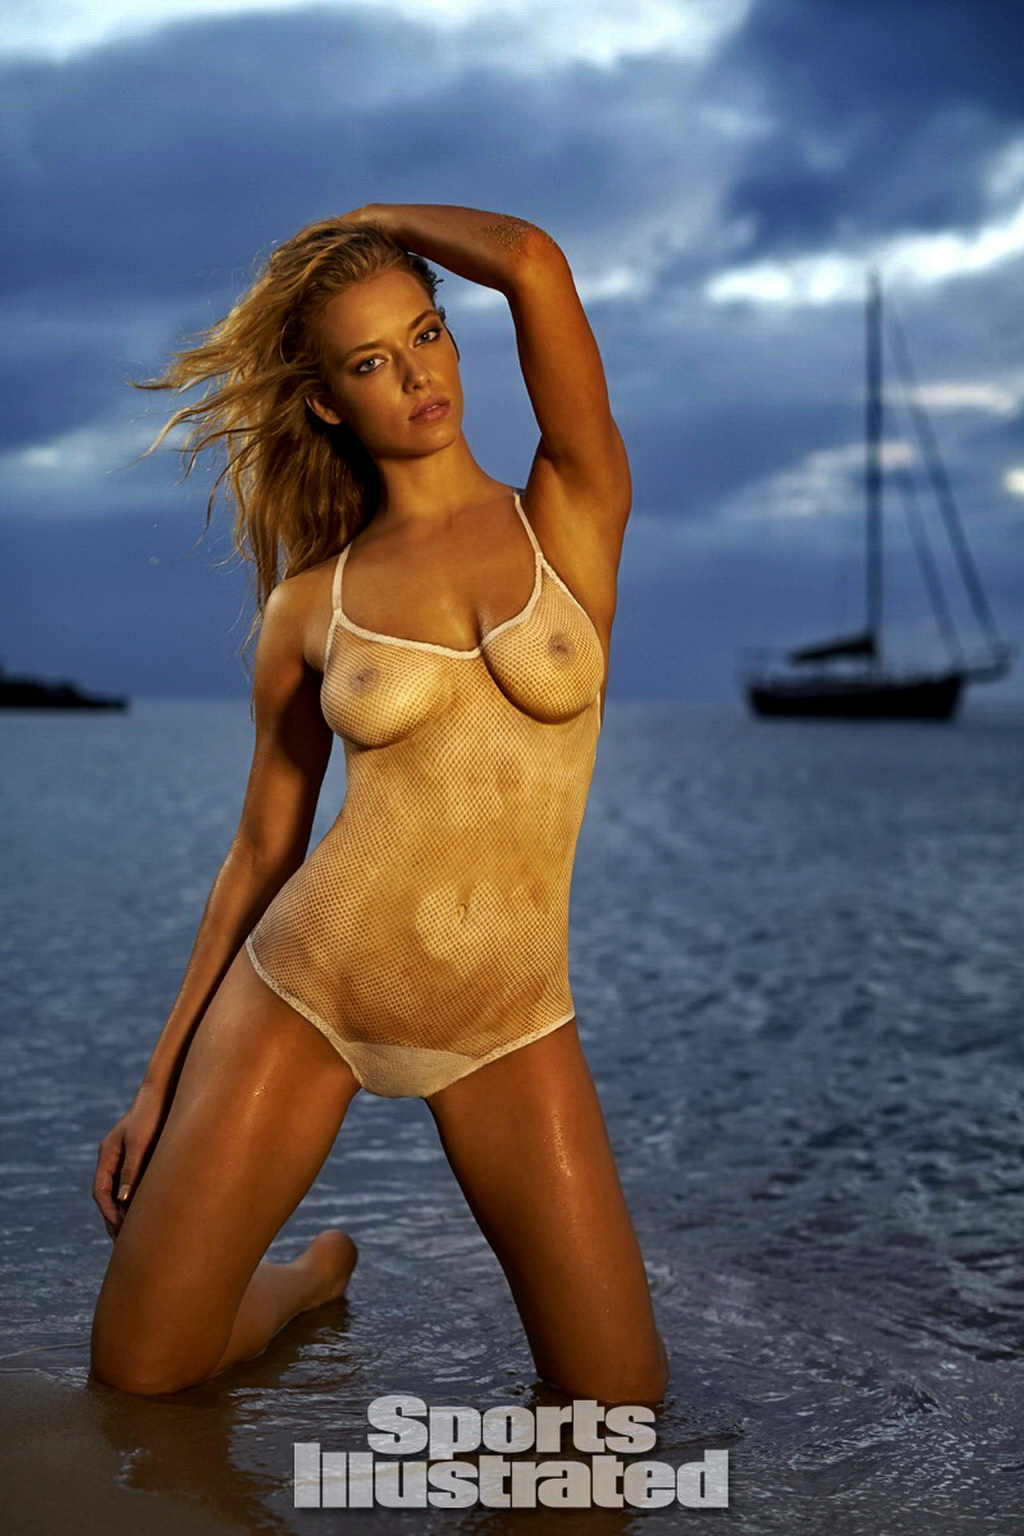 Sports illustrated swimsuit model archives